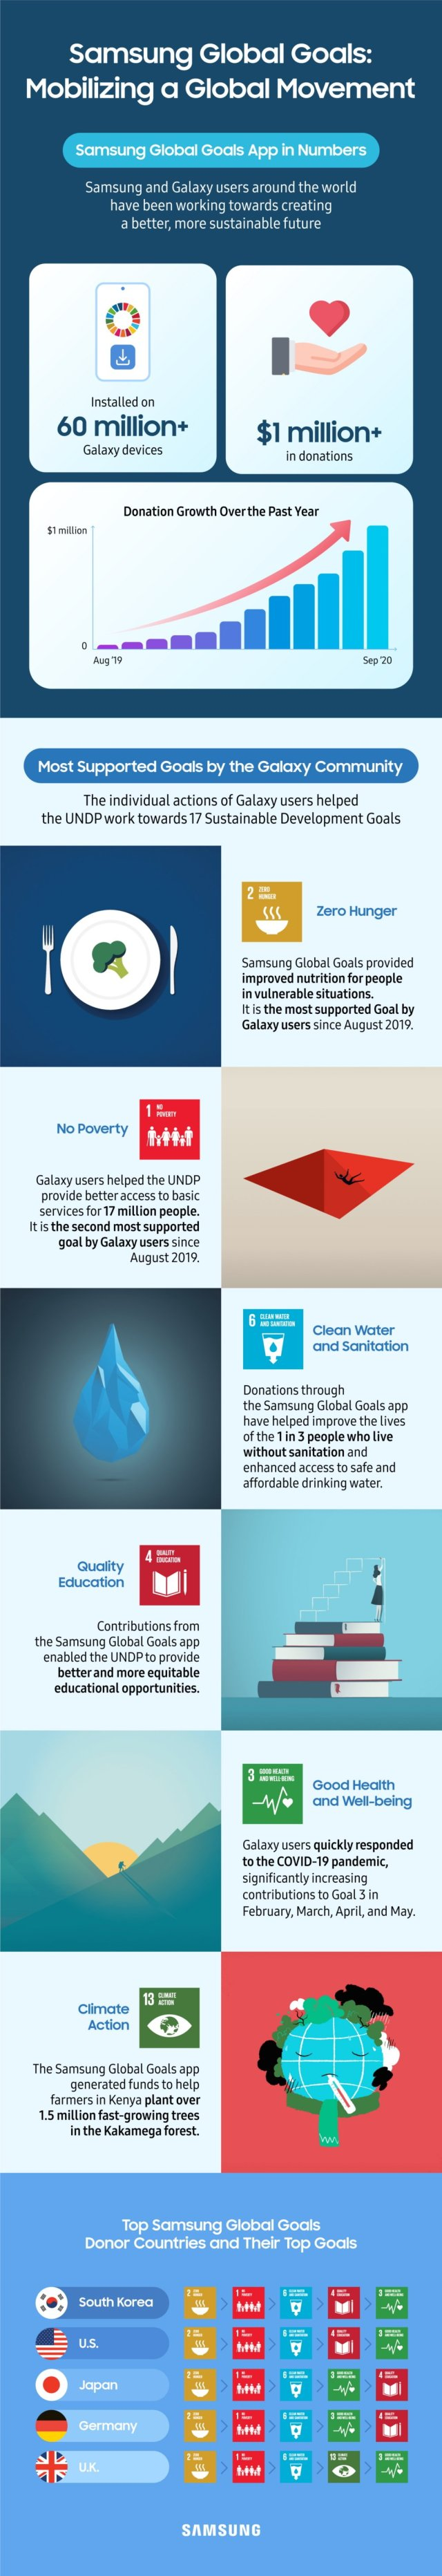 Samsung Global Goals App Infographic